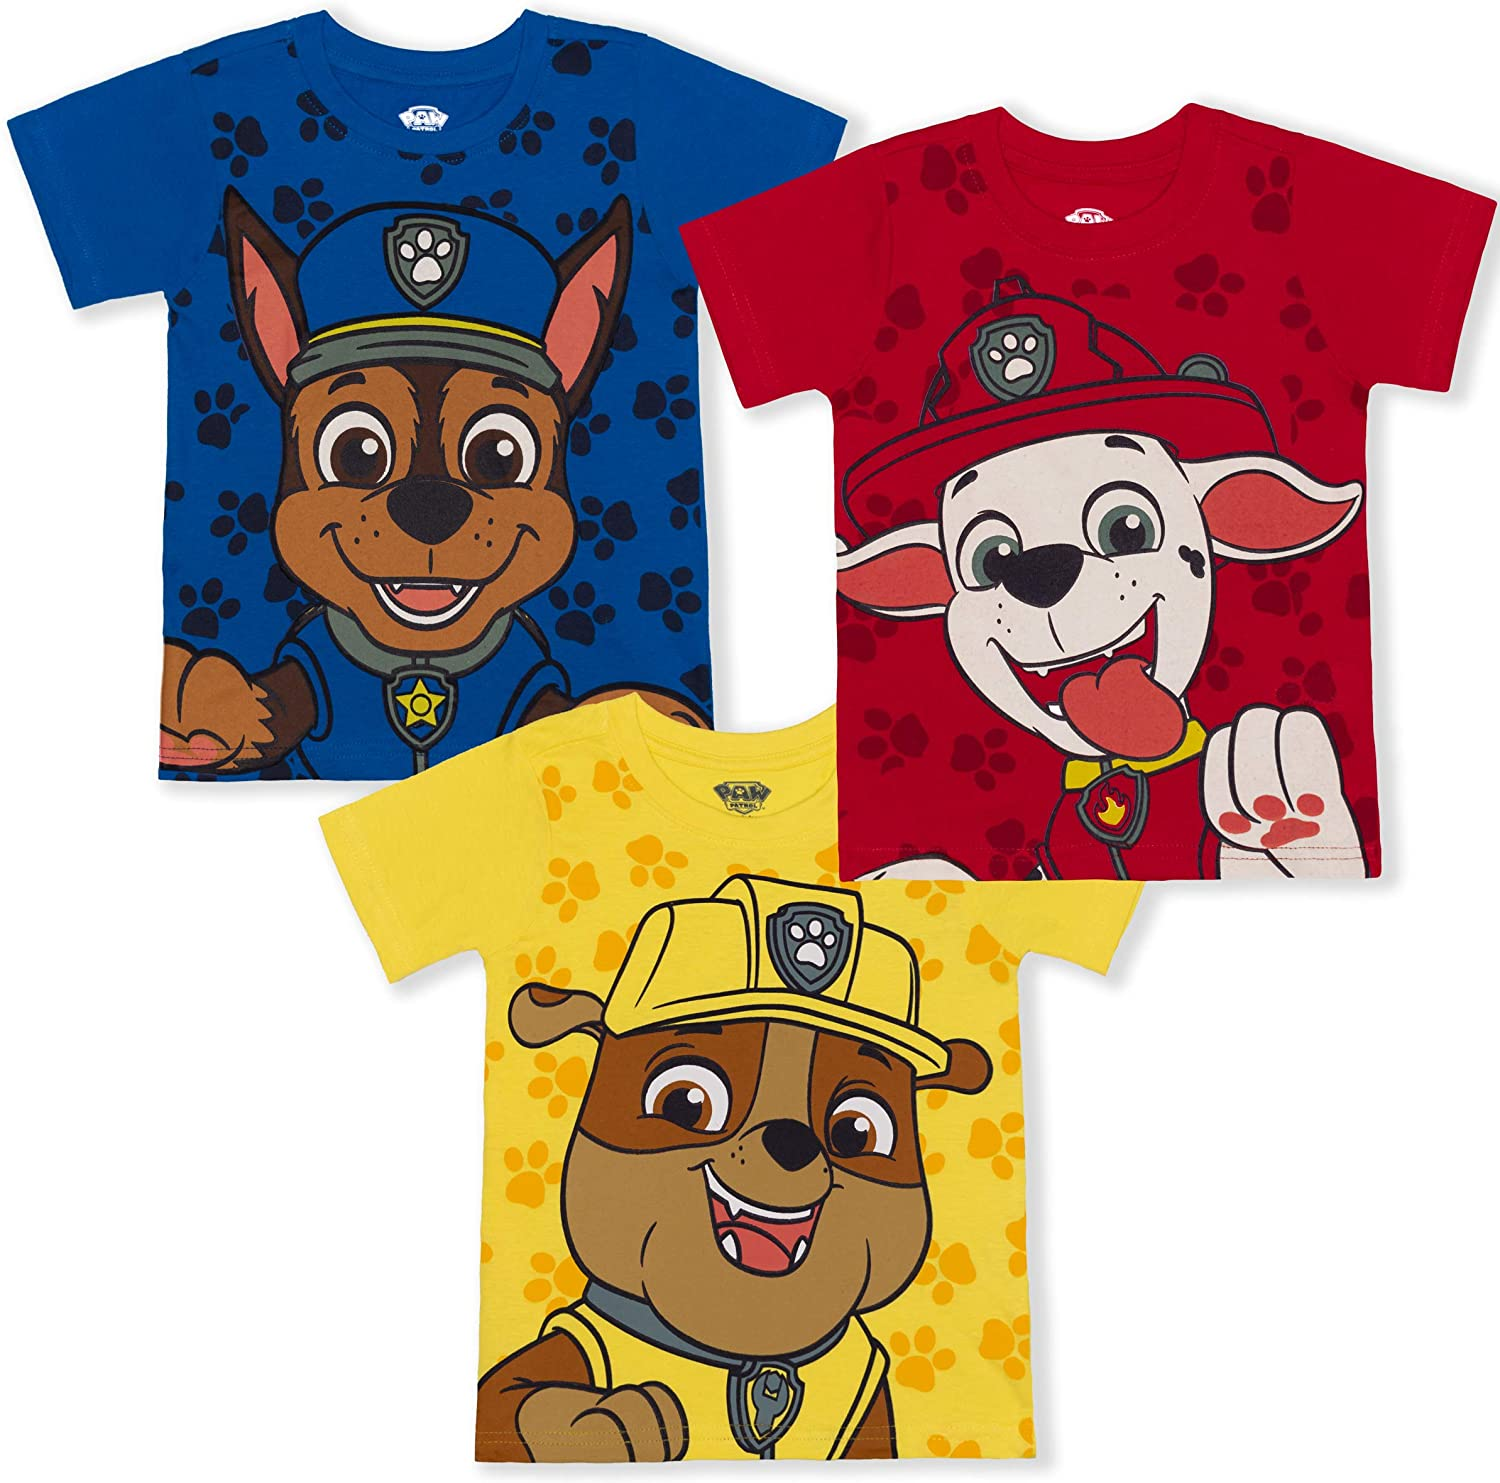 Nickelodeon Paw Patrol Boy's 3-Pack Chase, Marshall and Rubble Tees